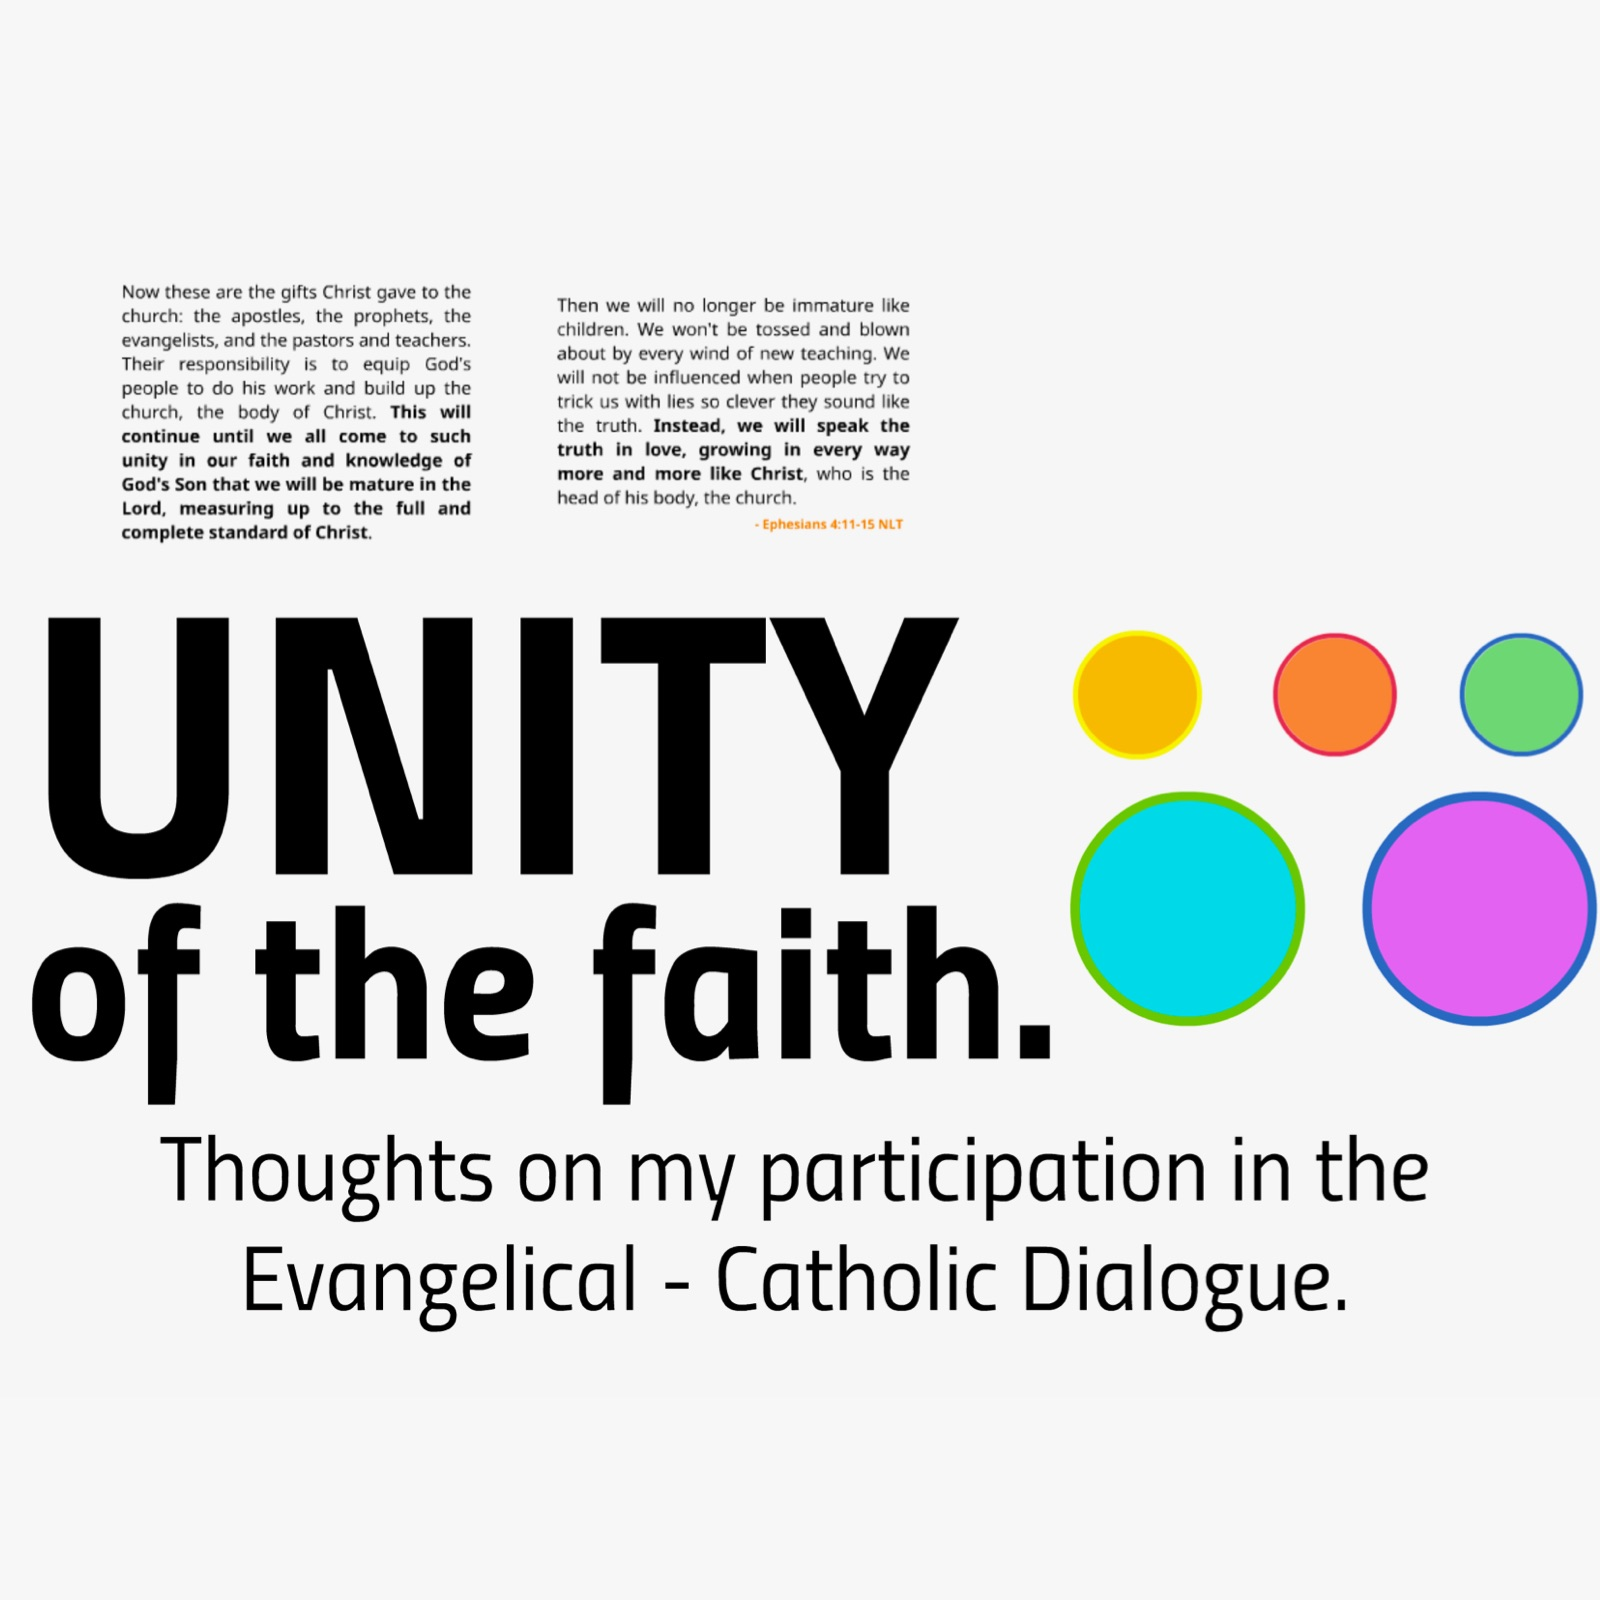 Unity of the Faith: Thoughts on My Participation in the Evangelical - Catholic Dialogue